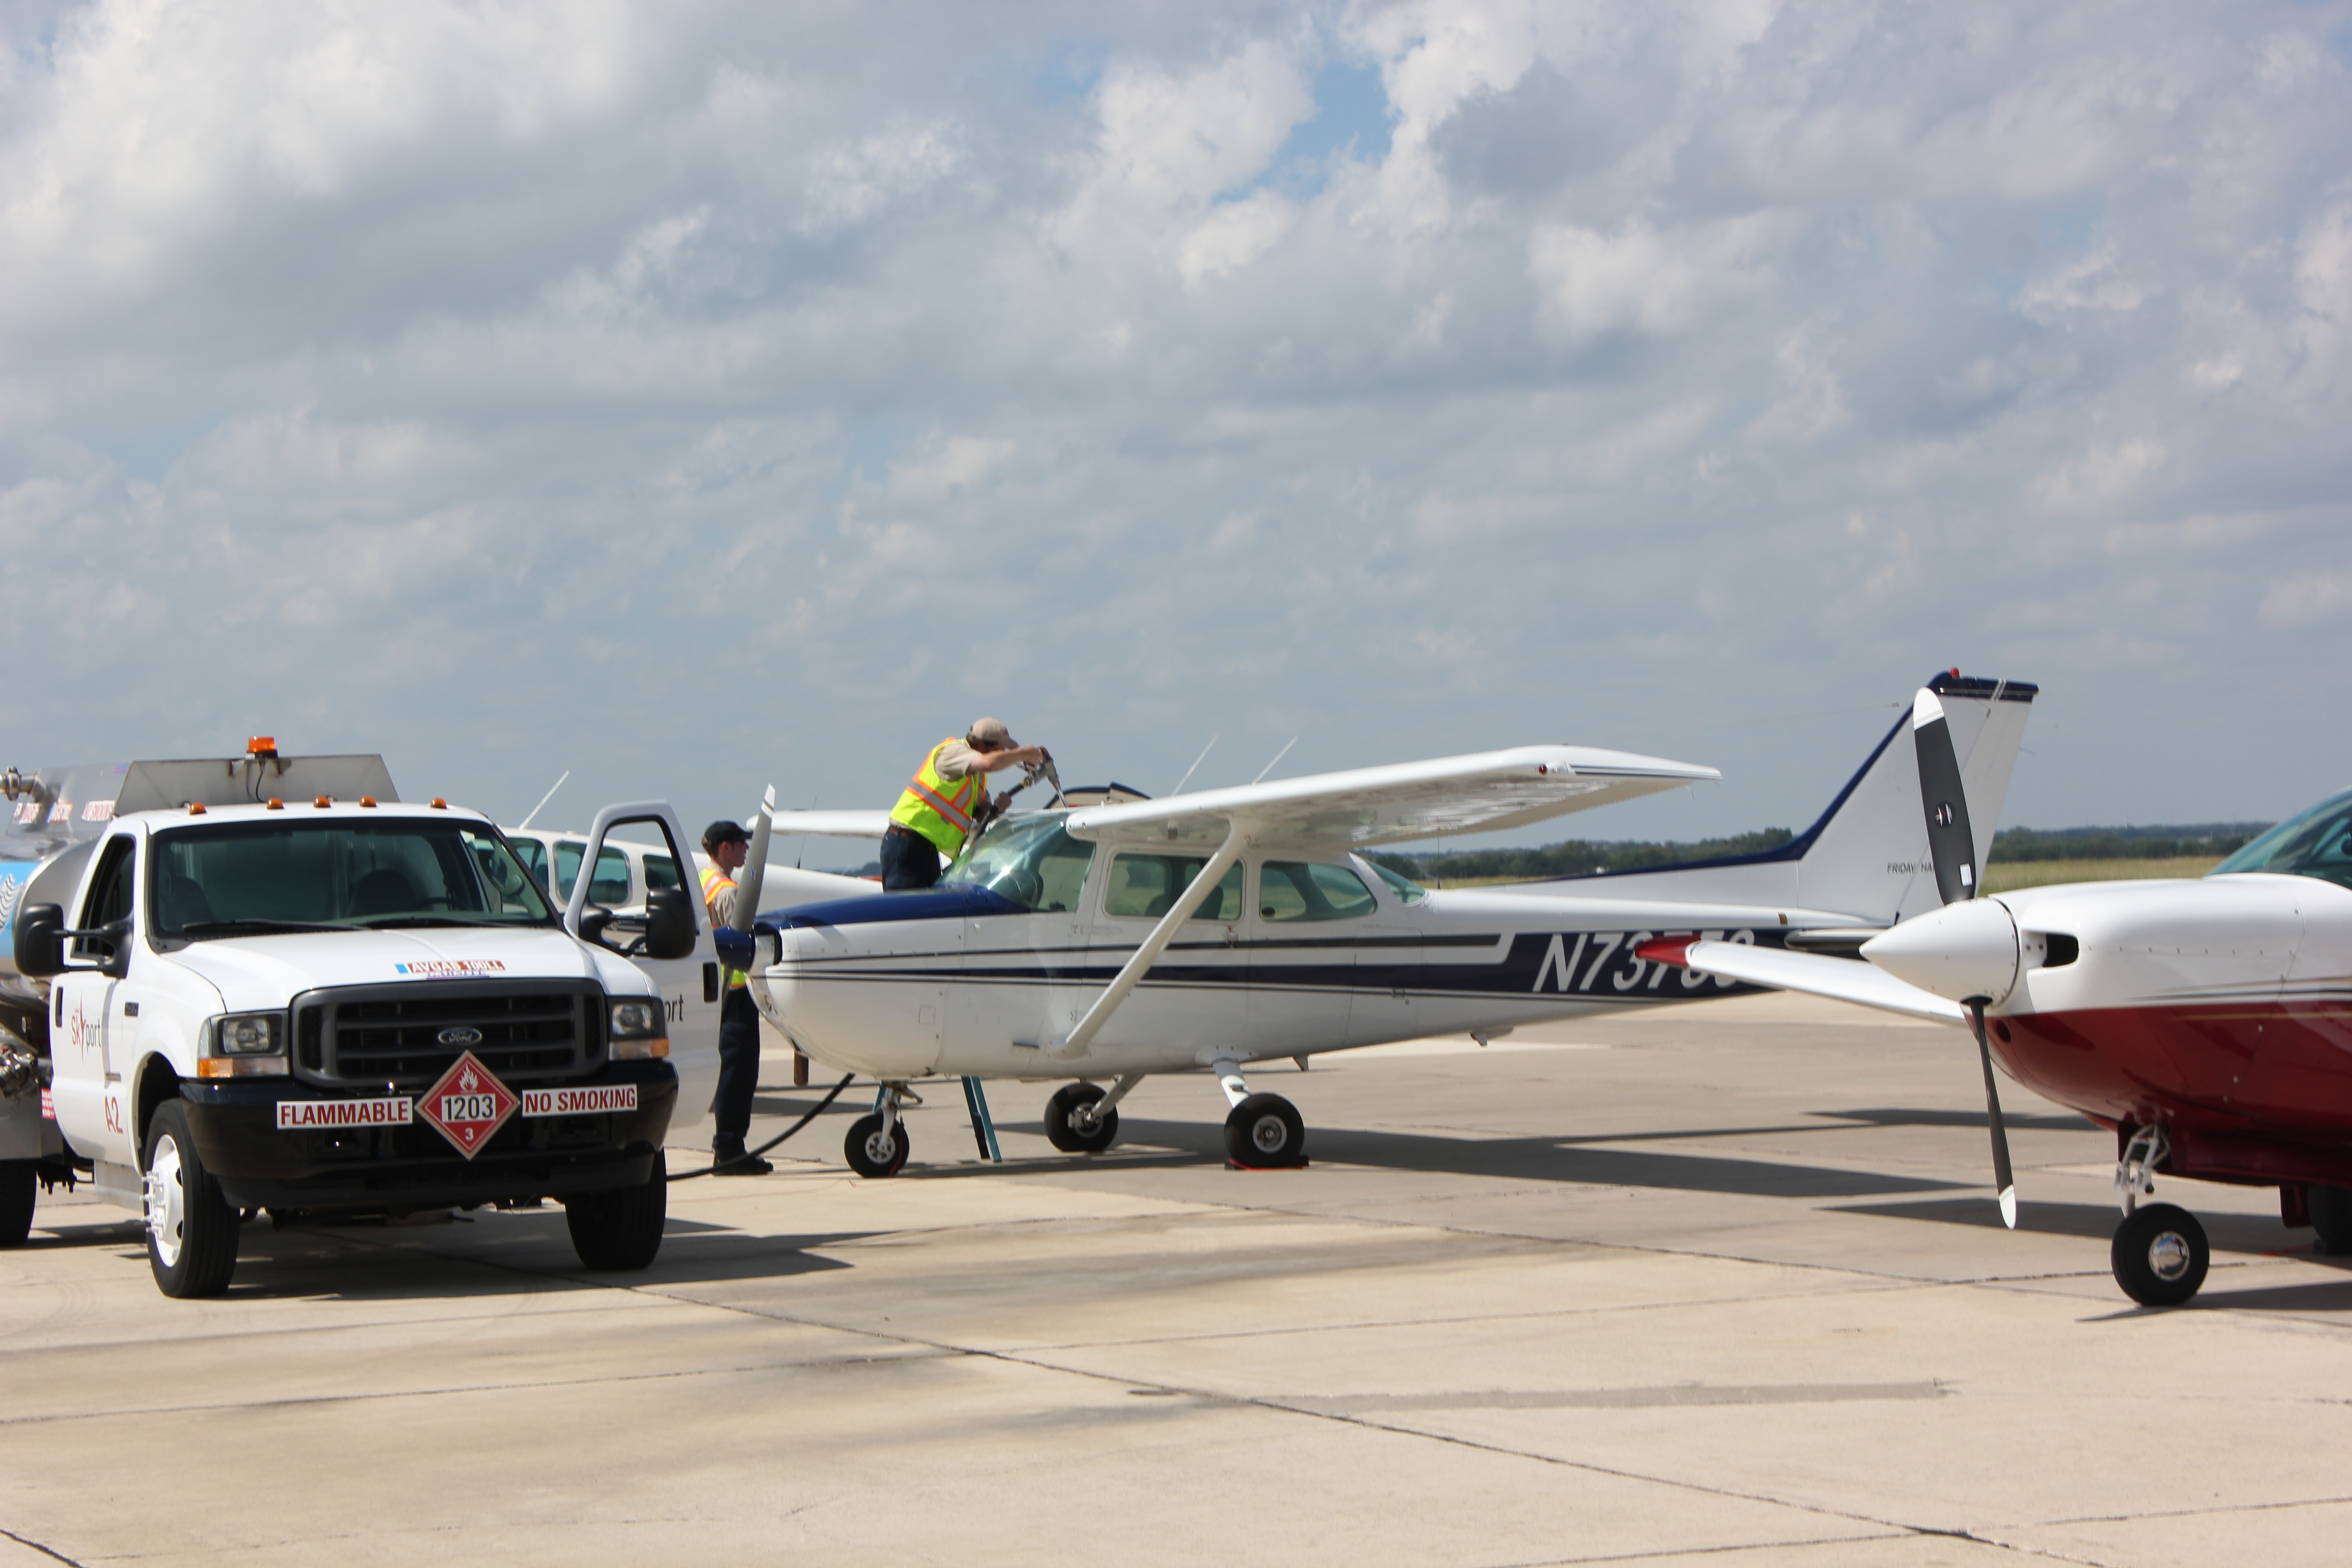 Skyport $1 Avgas Experiment to End On October 15